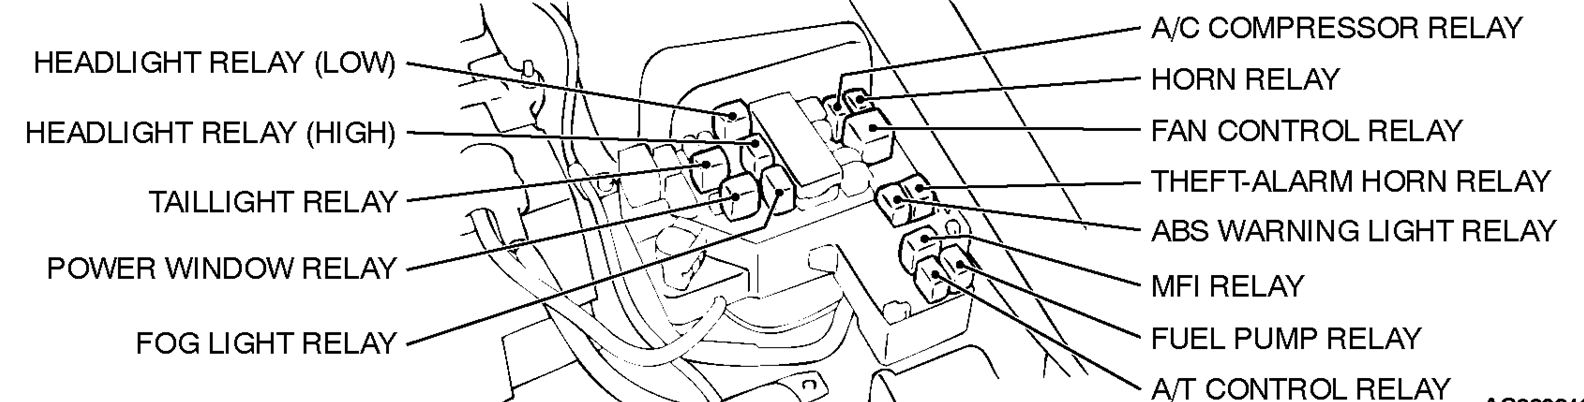 fuel pump wiring diagram 2003 galant fuel pump wiring diagram where is the fuel pump relay located on a 2001 mitsubishi galant fuel pump wiring diagram